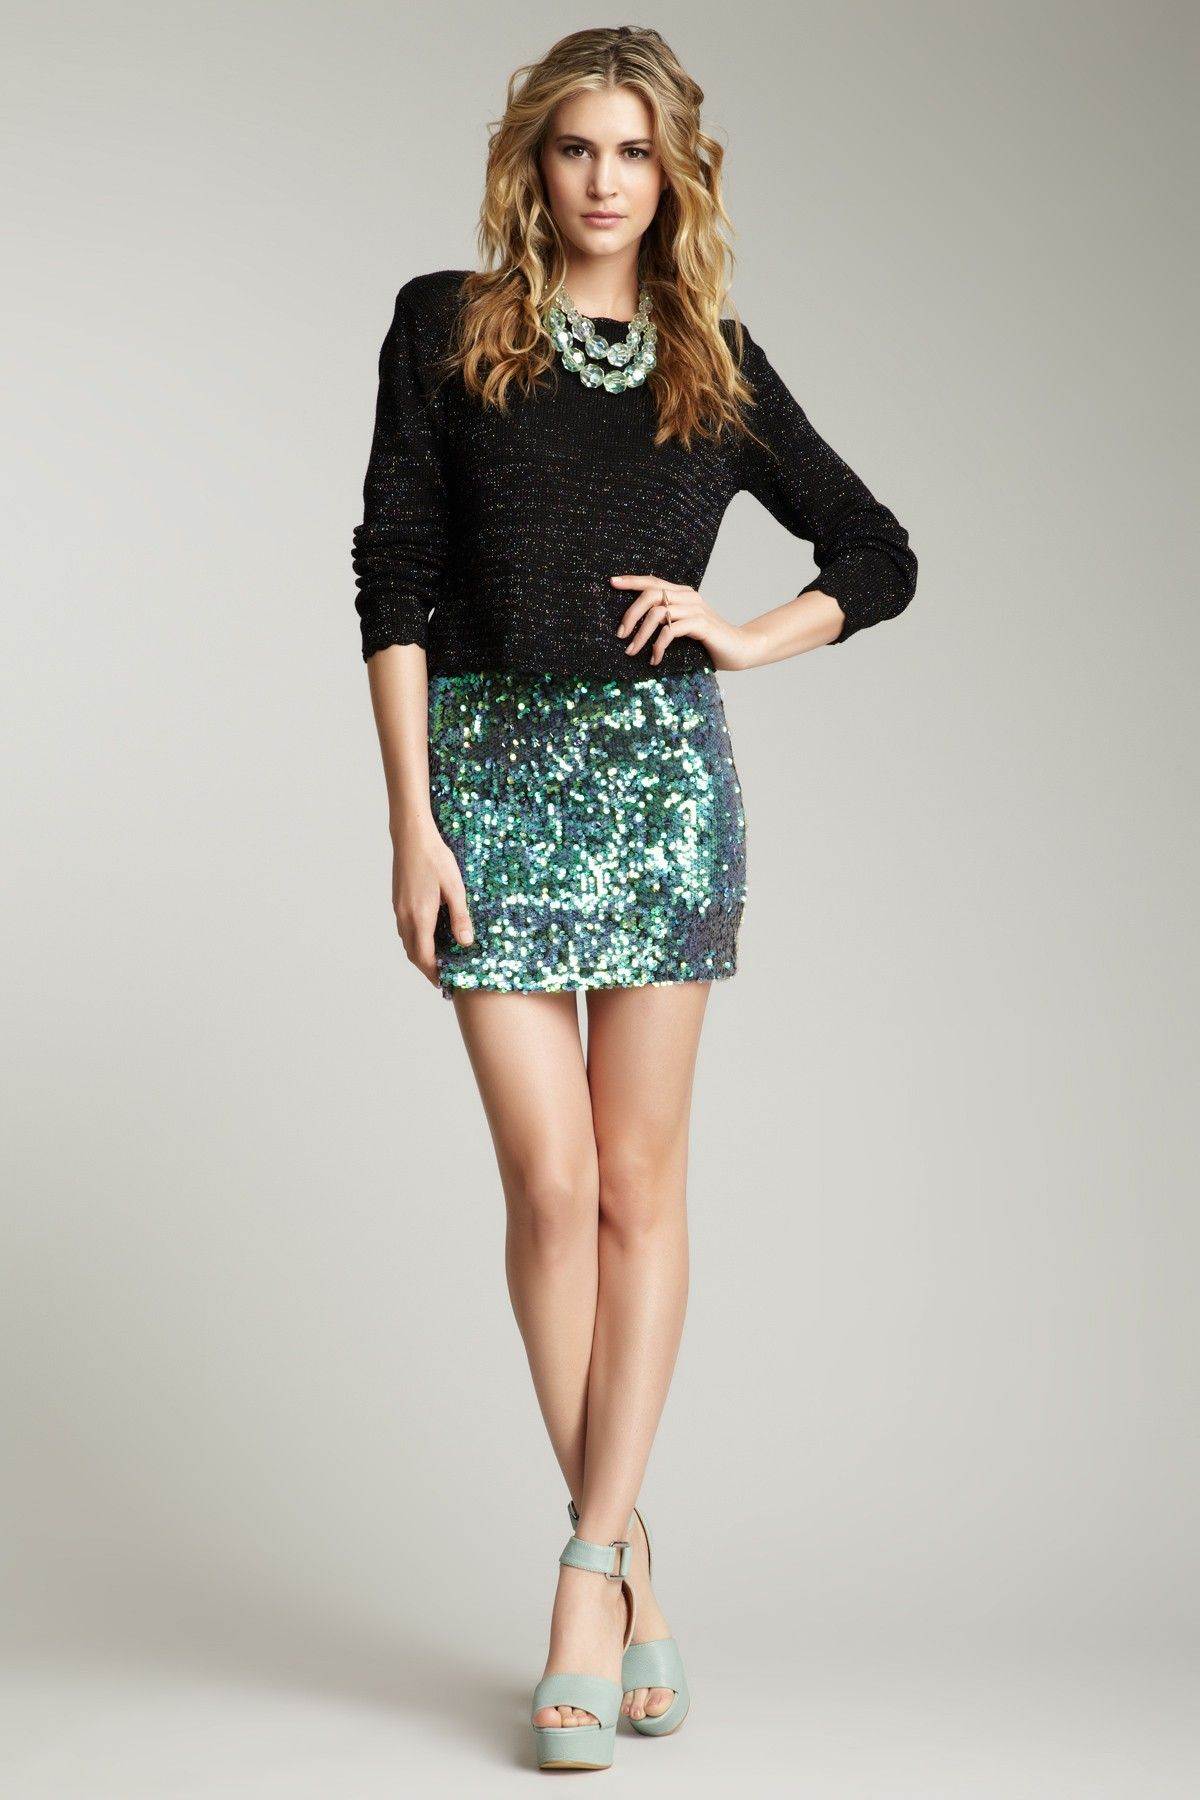 Mini sequin skirt outfit images